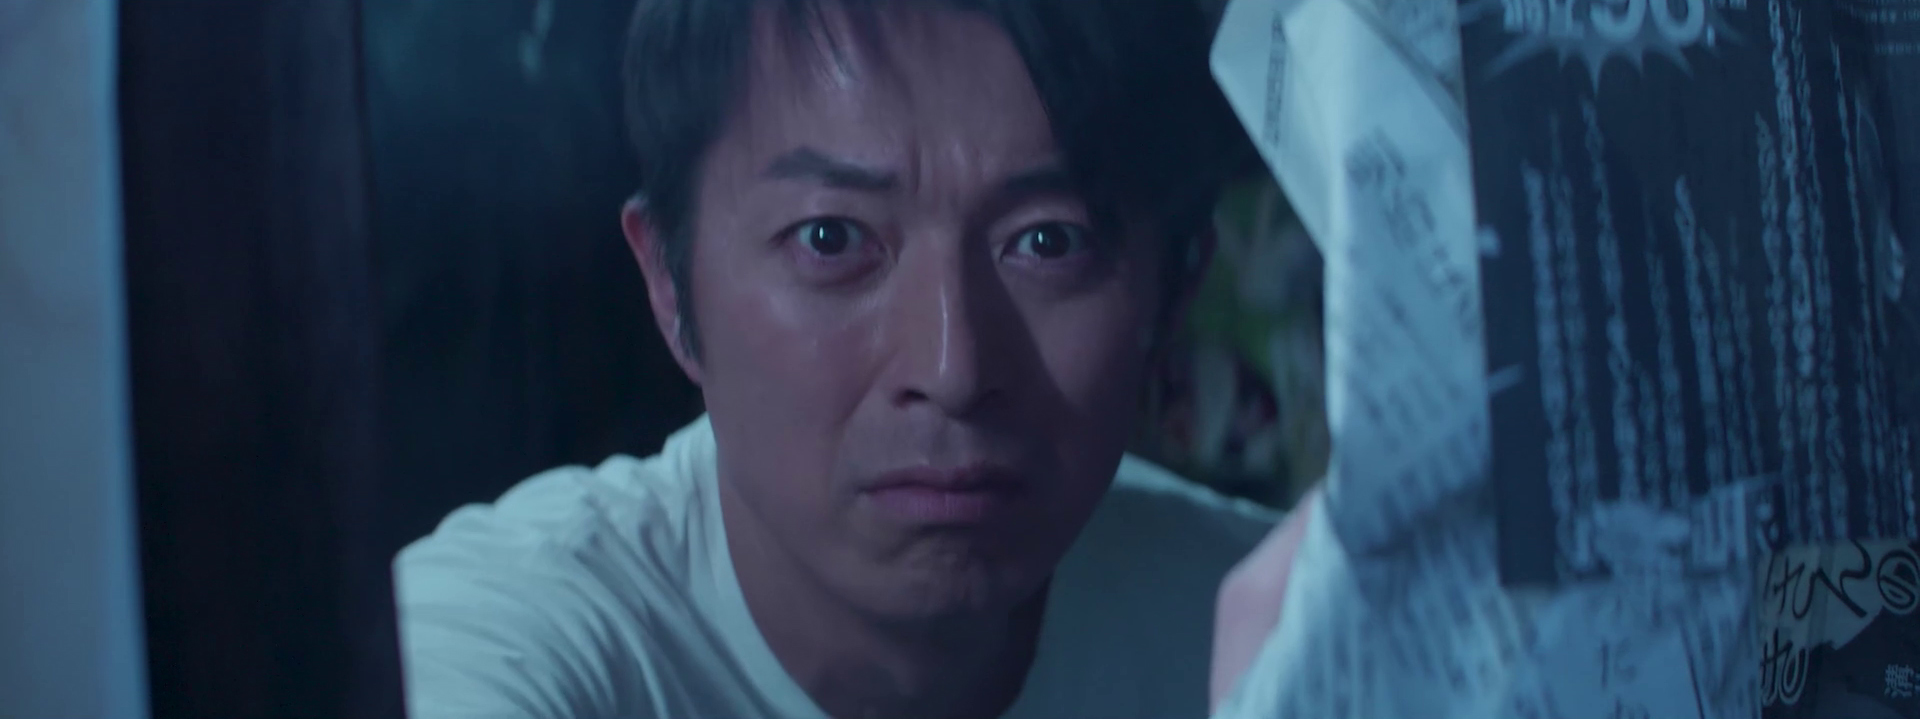 headshot of a Japanese actor scared